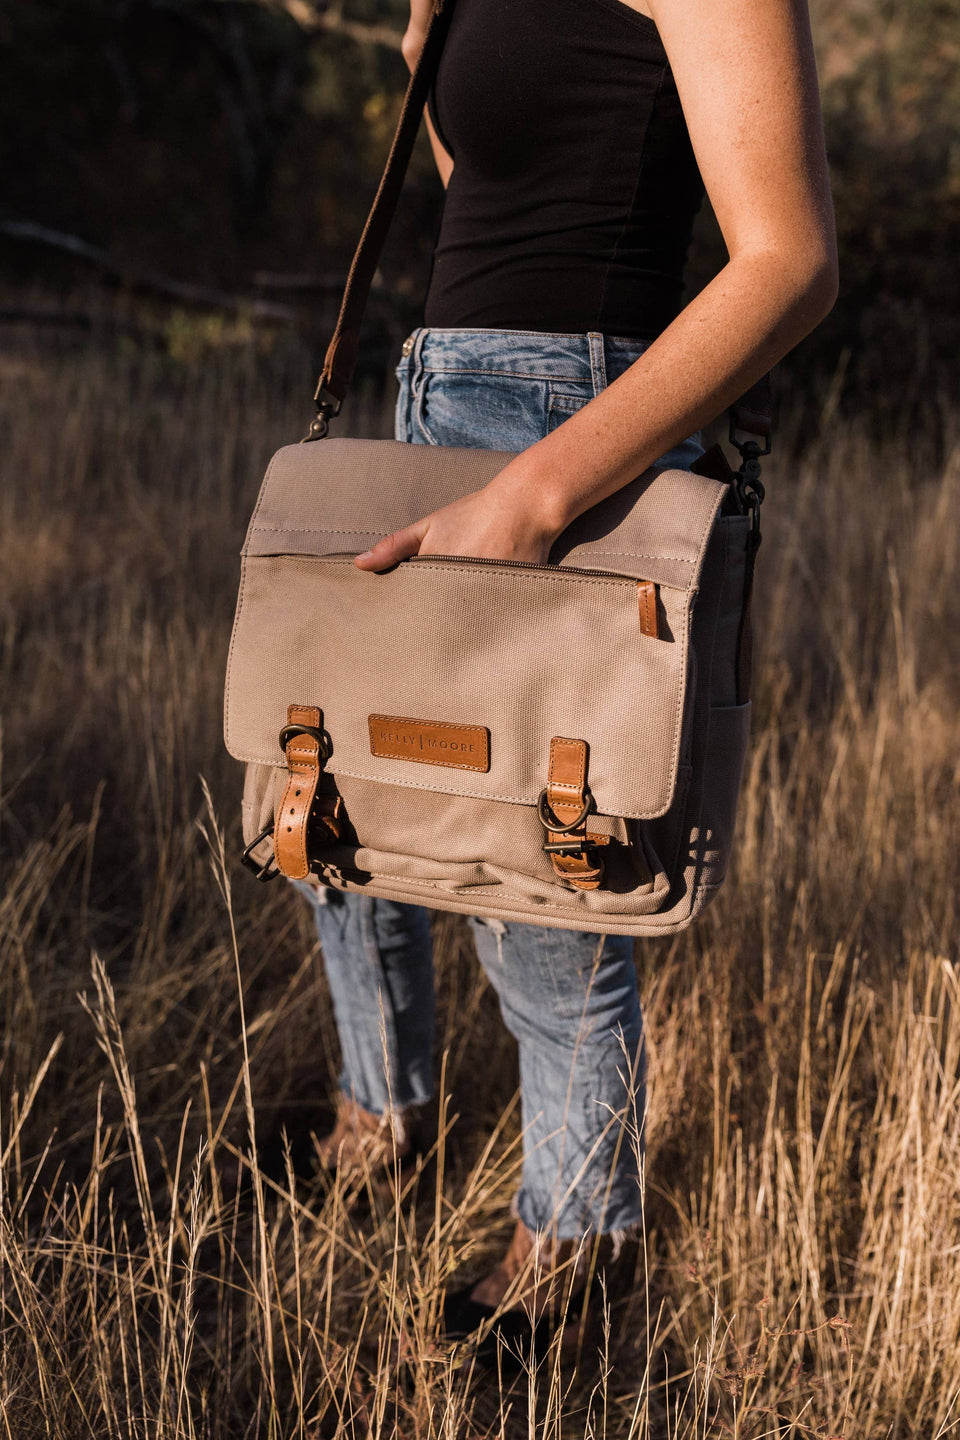 Kate 2.0 - Canvas + Full Grain Leather Messenger (Tan) - Kelly Moore Bag